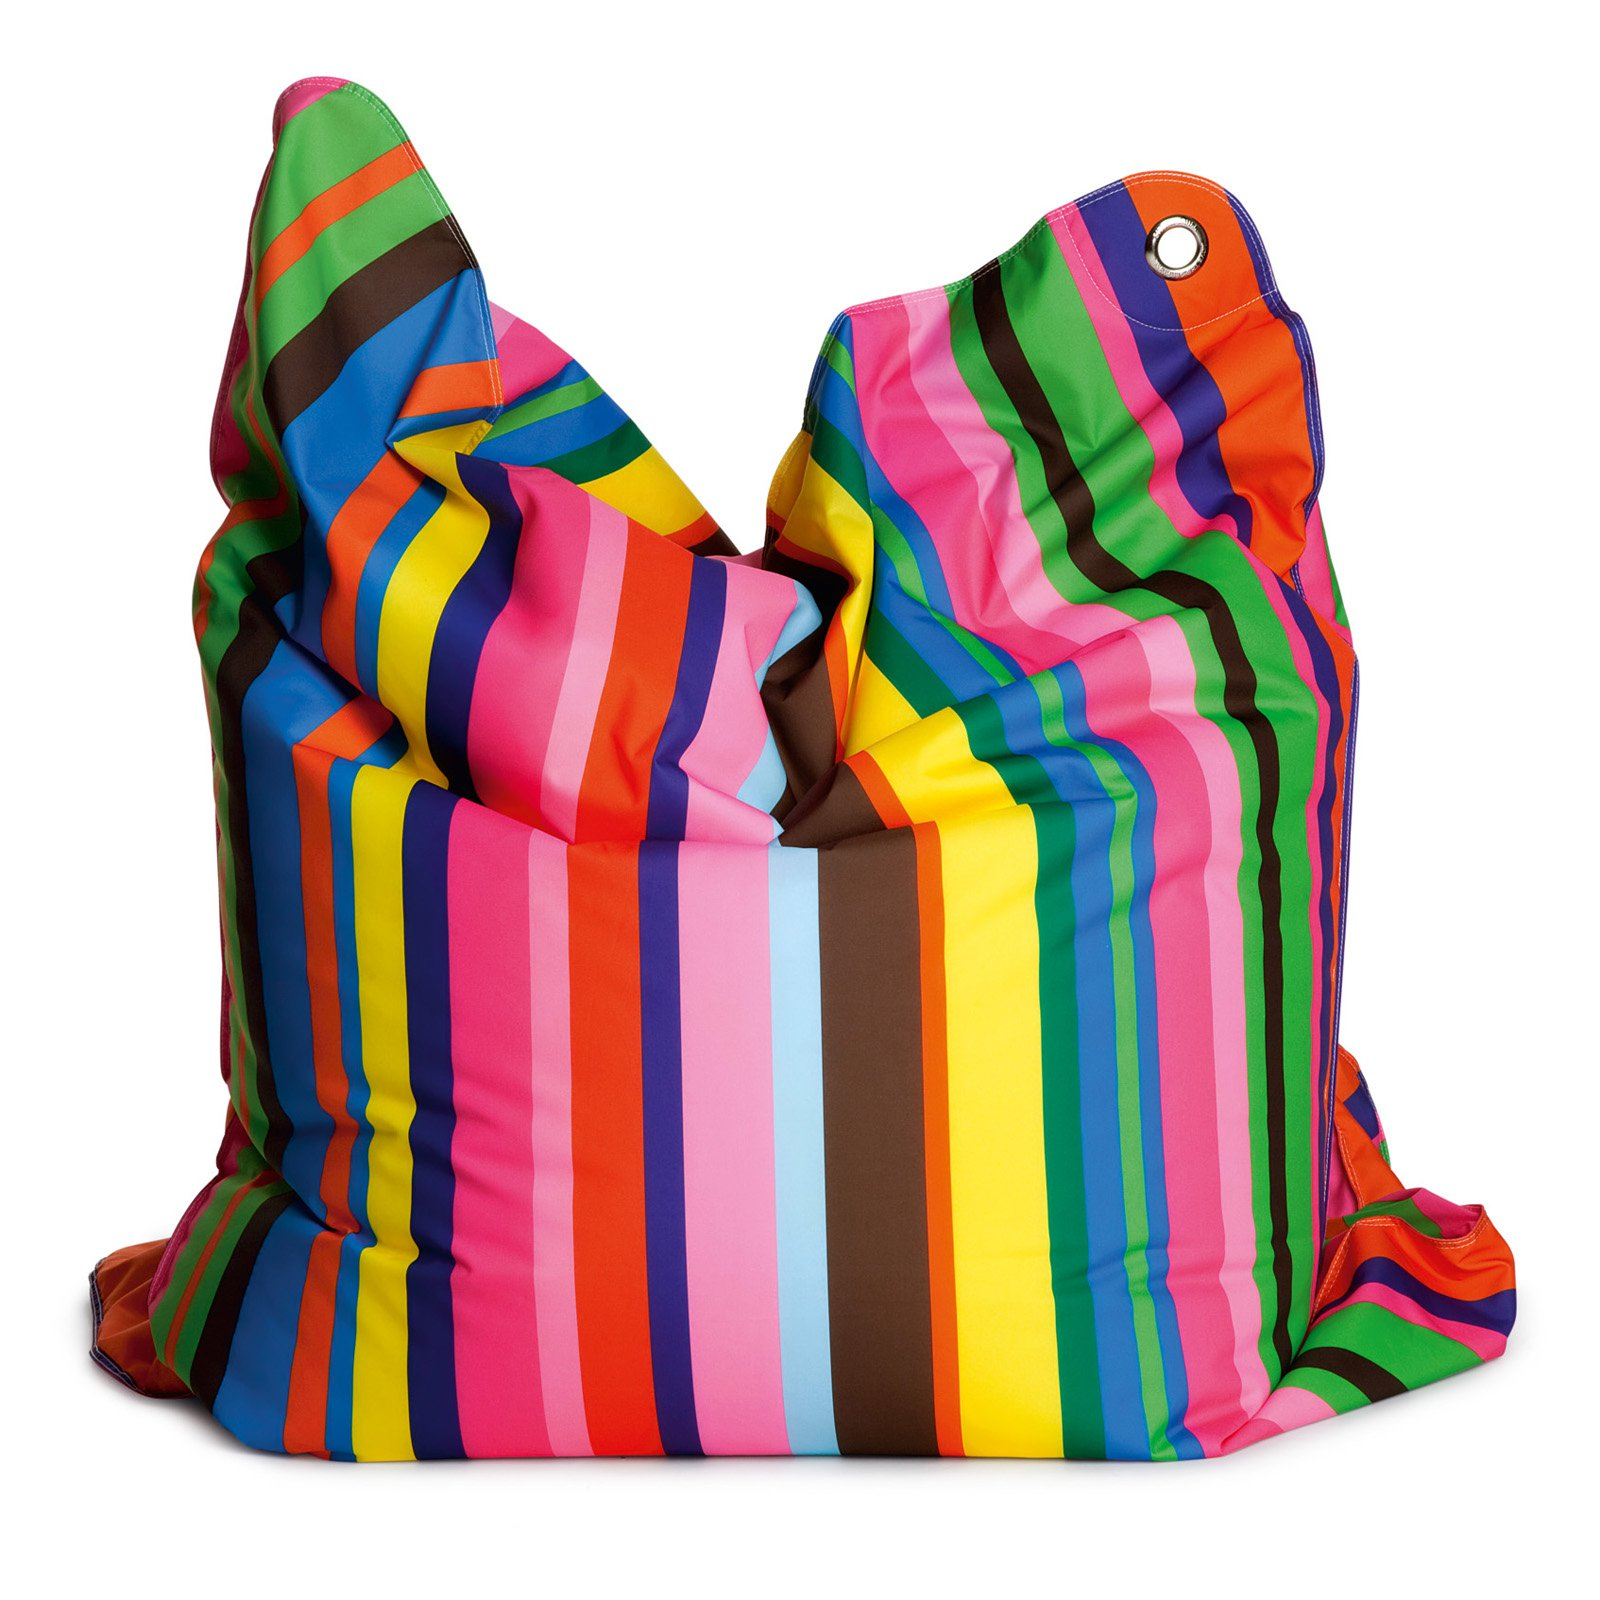 THE BULL Large Fashion Bean Bag Chair - Fashion Candy Stripe